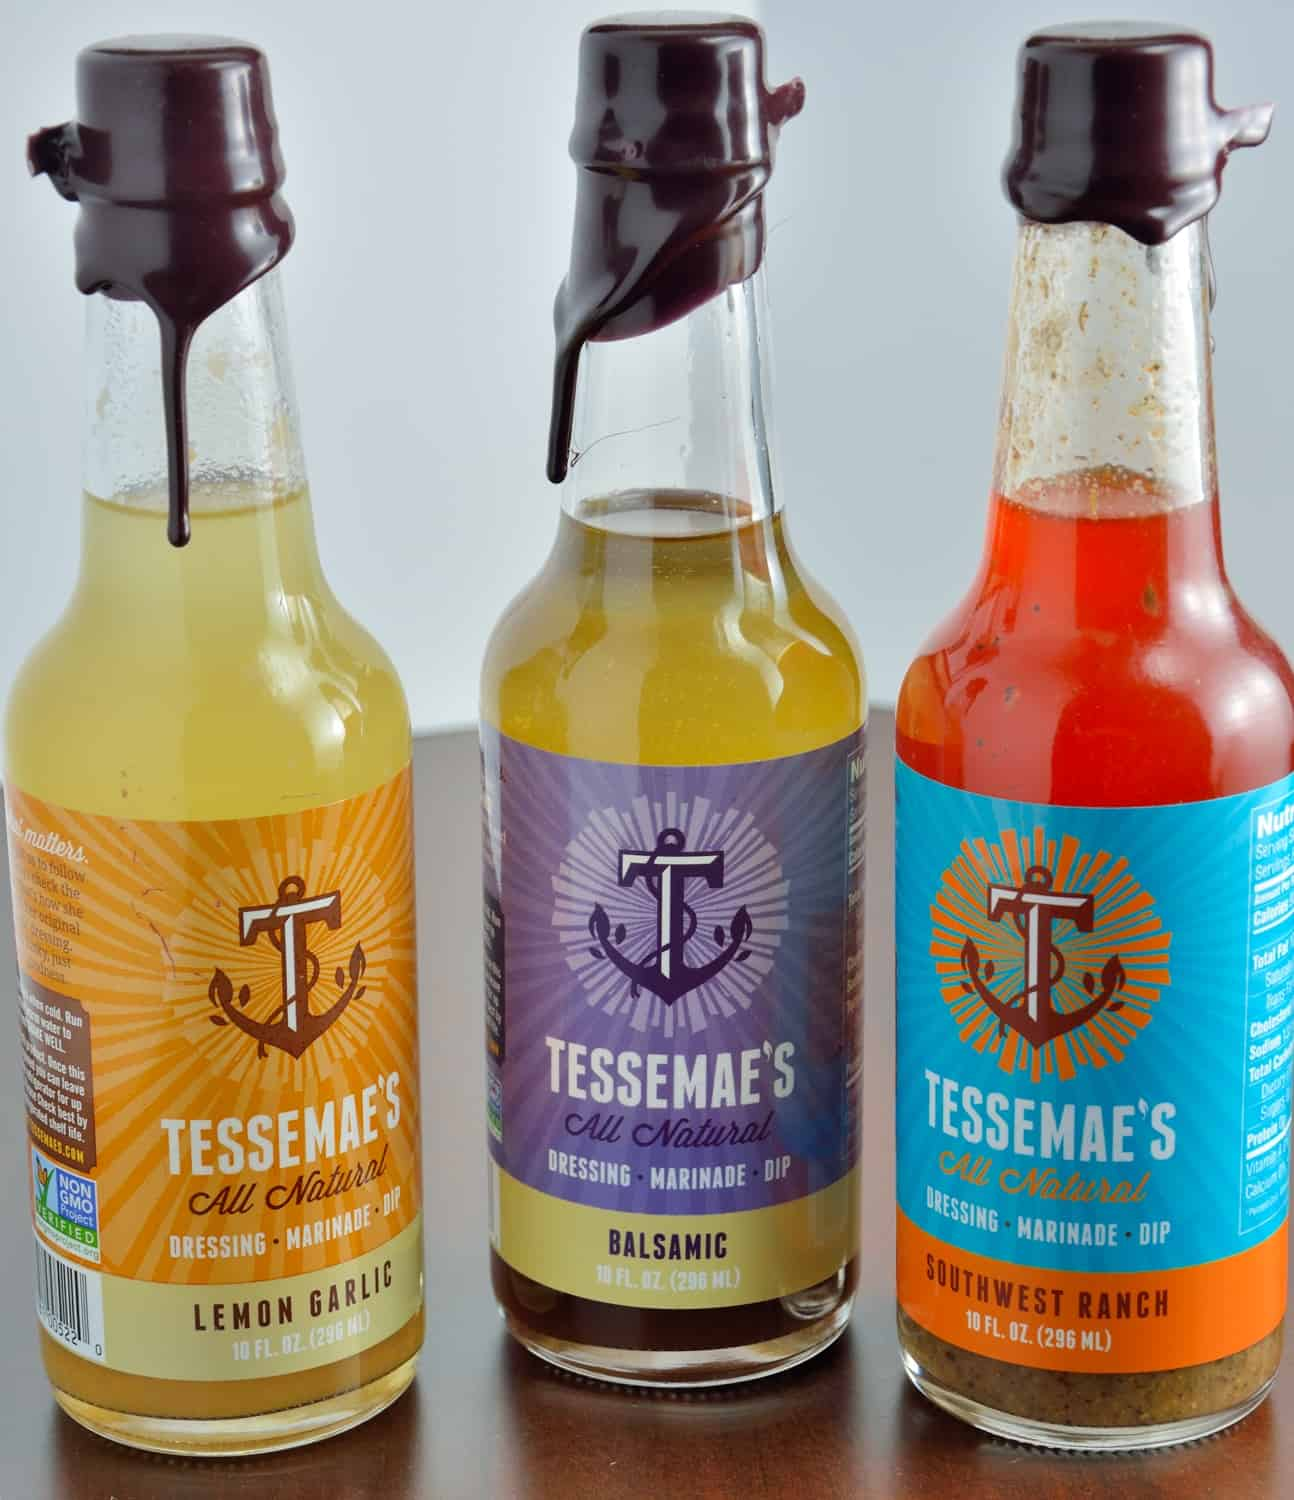 Tessemae's Products